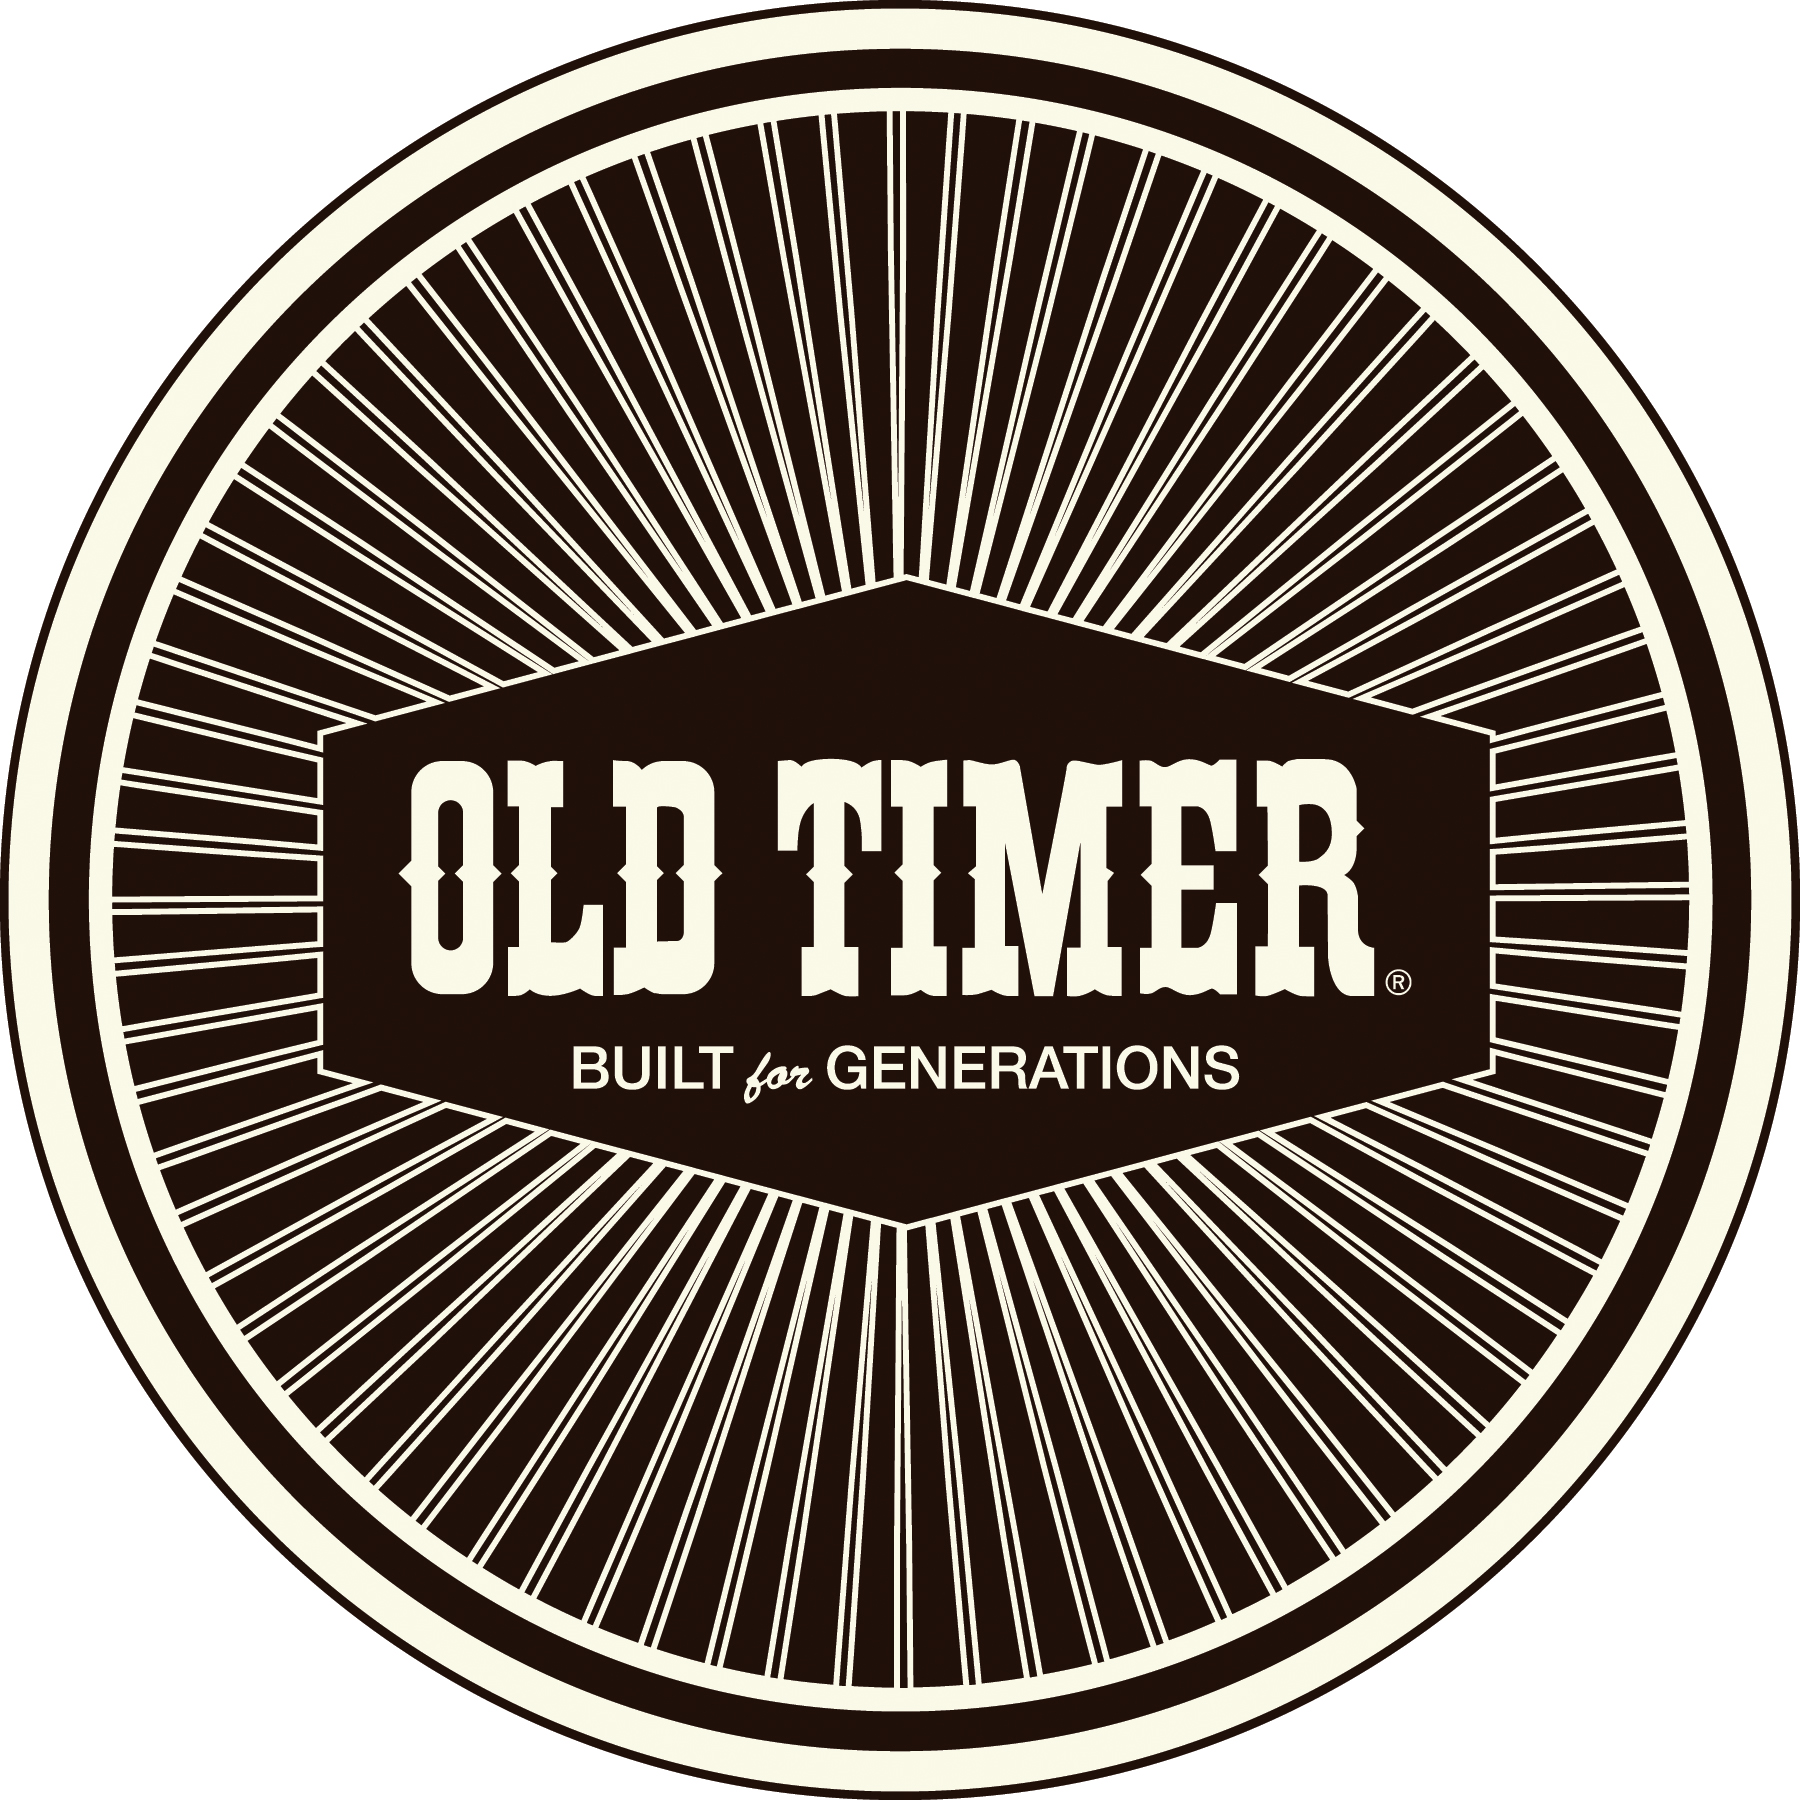 OTD1 - Schrade Old Timer Window Decal